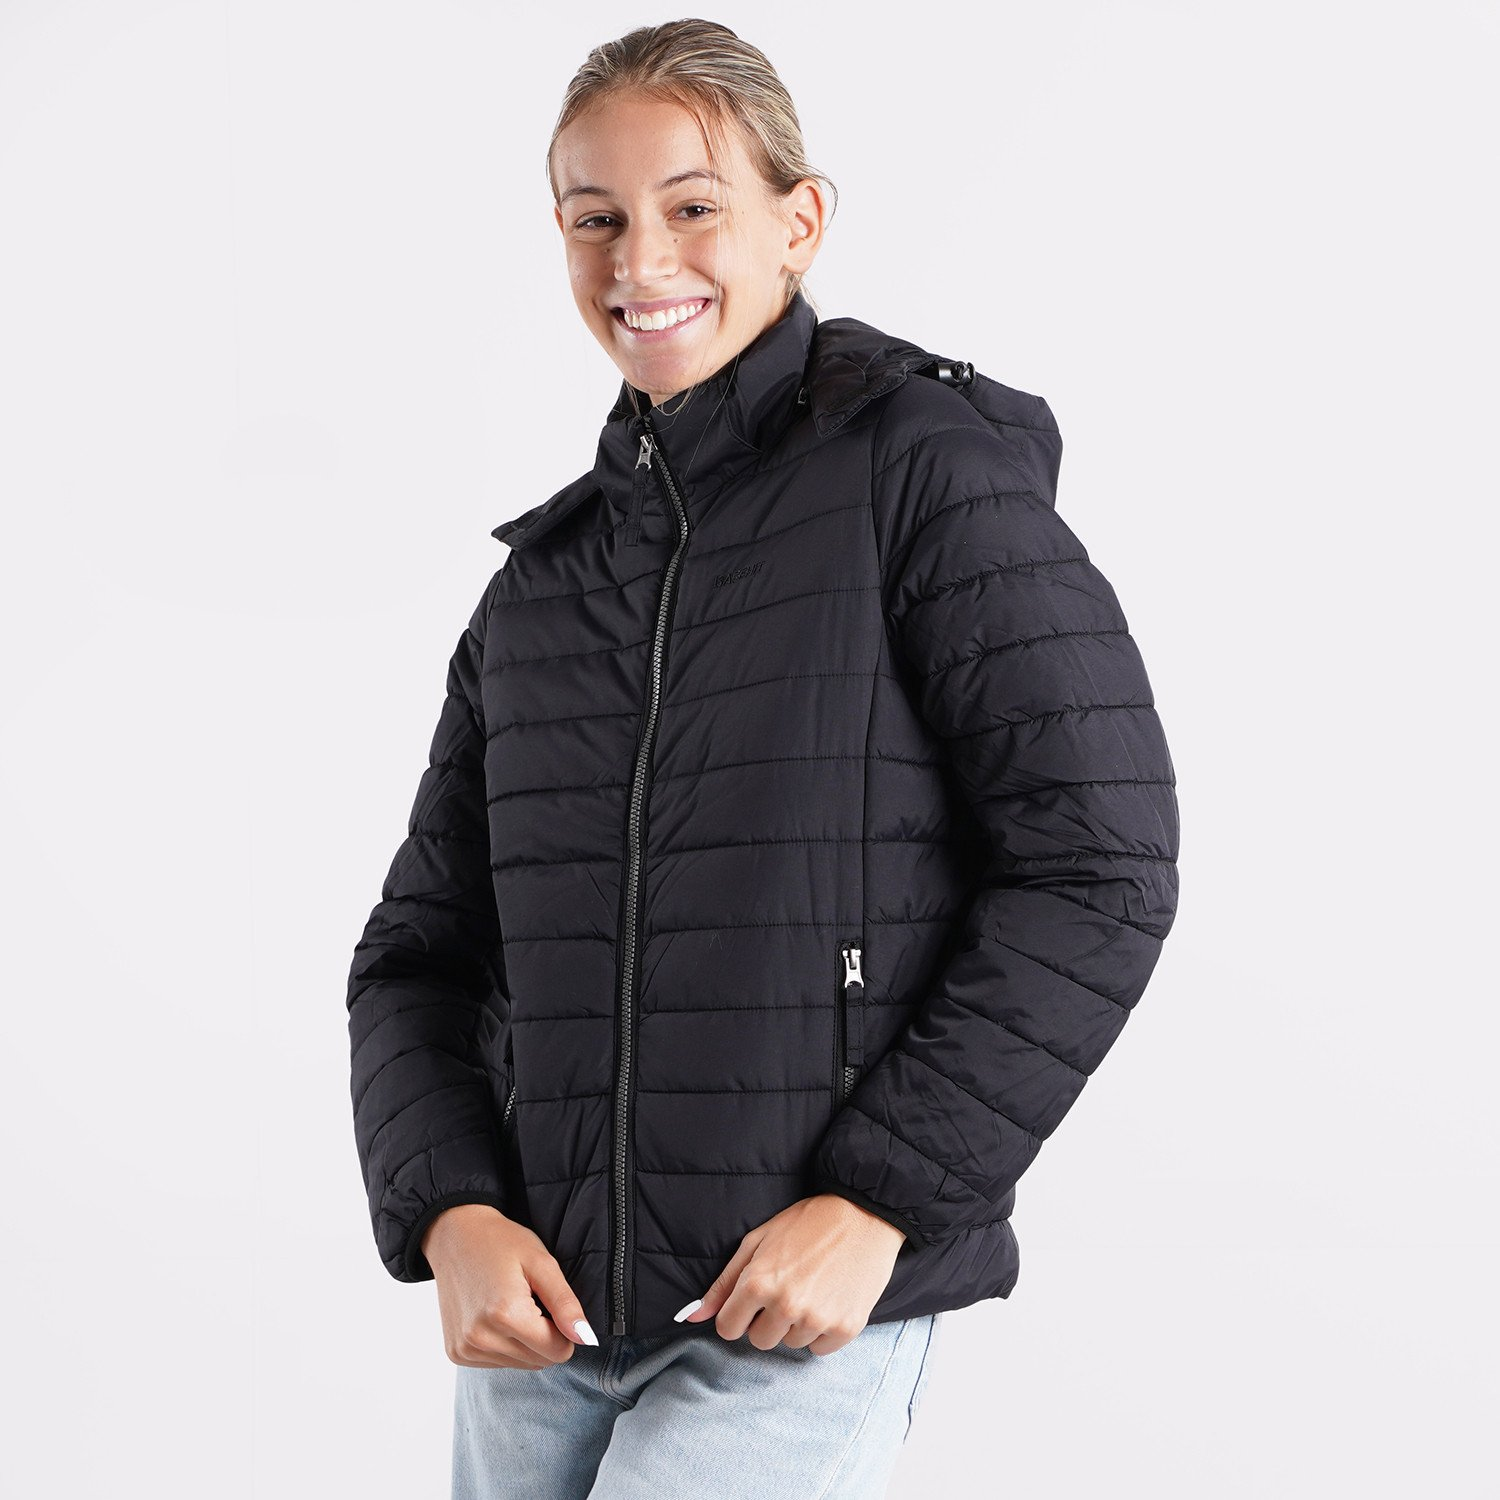 Basehit Women's P.P. Down Jacket with Hood (9000090470_40973)